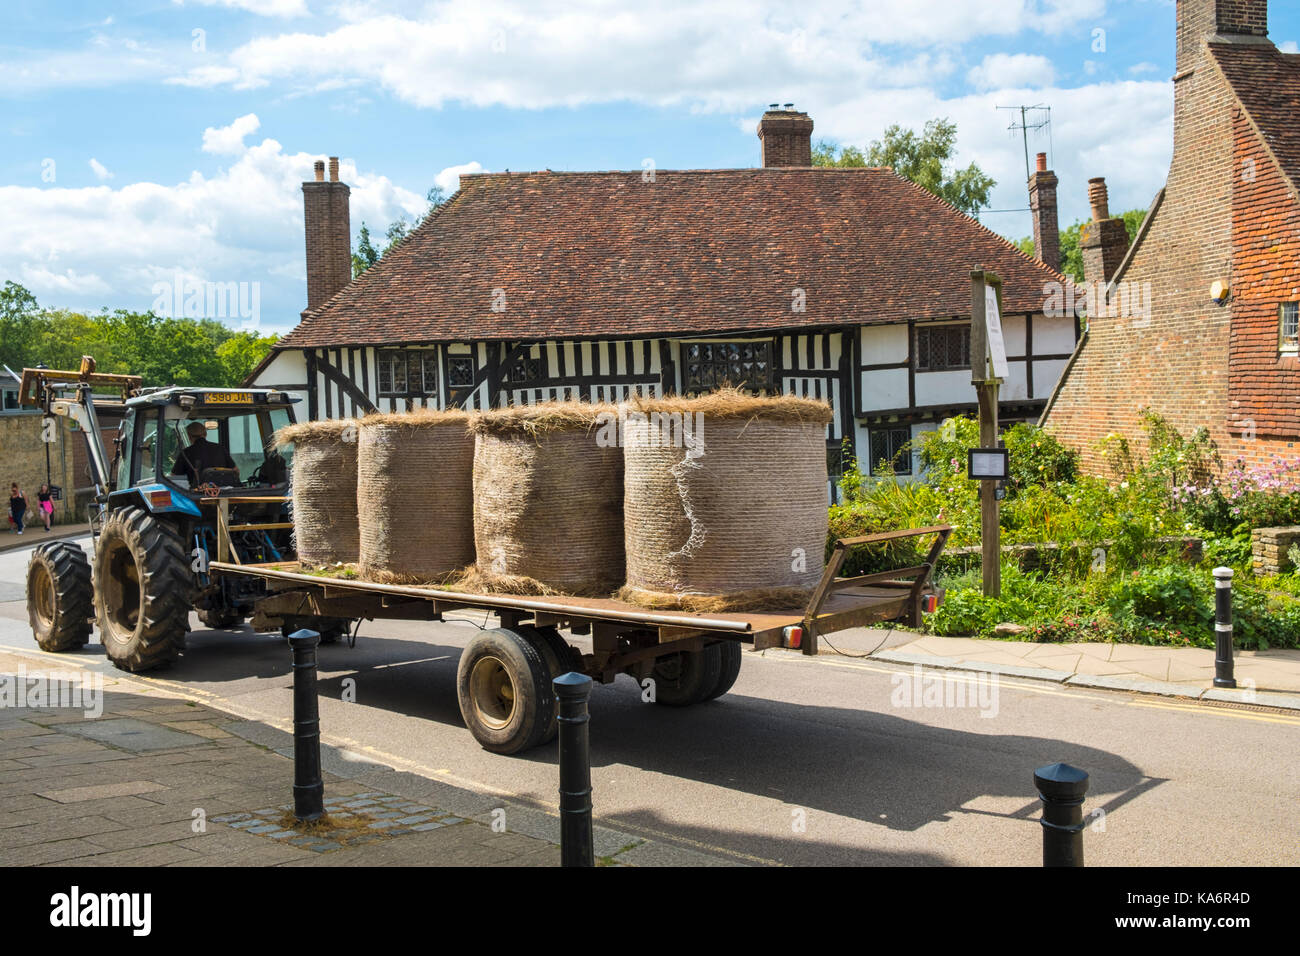 Straw bales on a tractor going to the farm through picturesque Battle Town, East Sussex, England, UK. - Stock Image